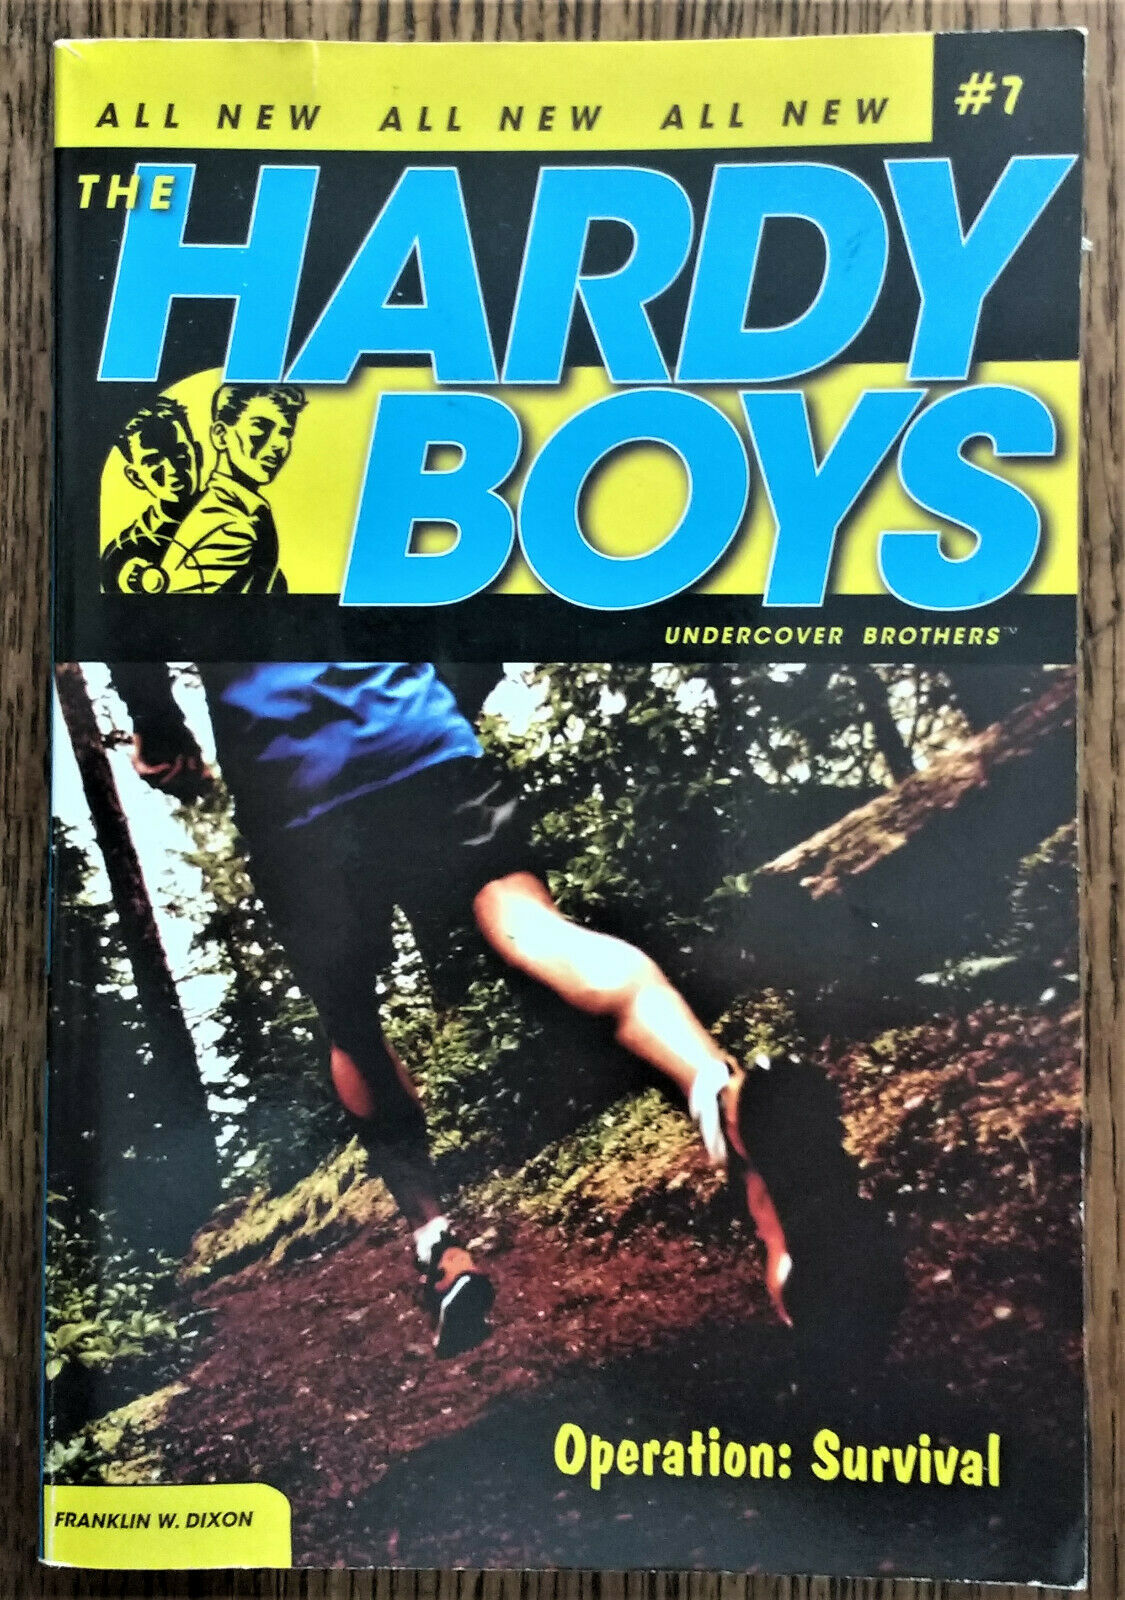 THE HARDY BOYS UNDERCOVER BROTHERS SERIES pb  Bk 7 OPERATION: SURVIVAL YA |